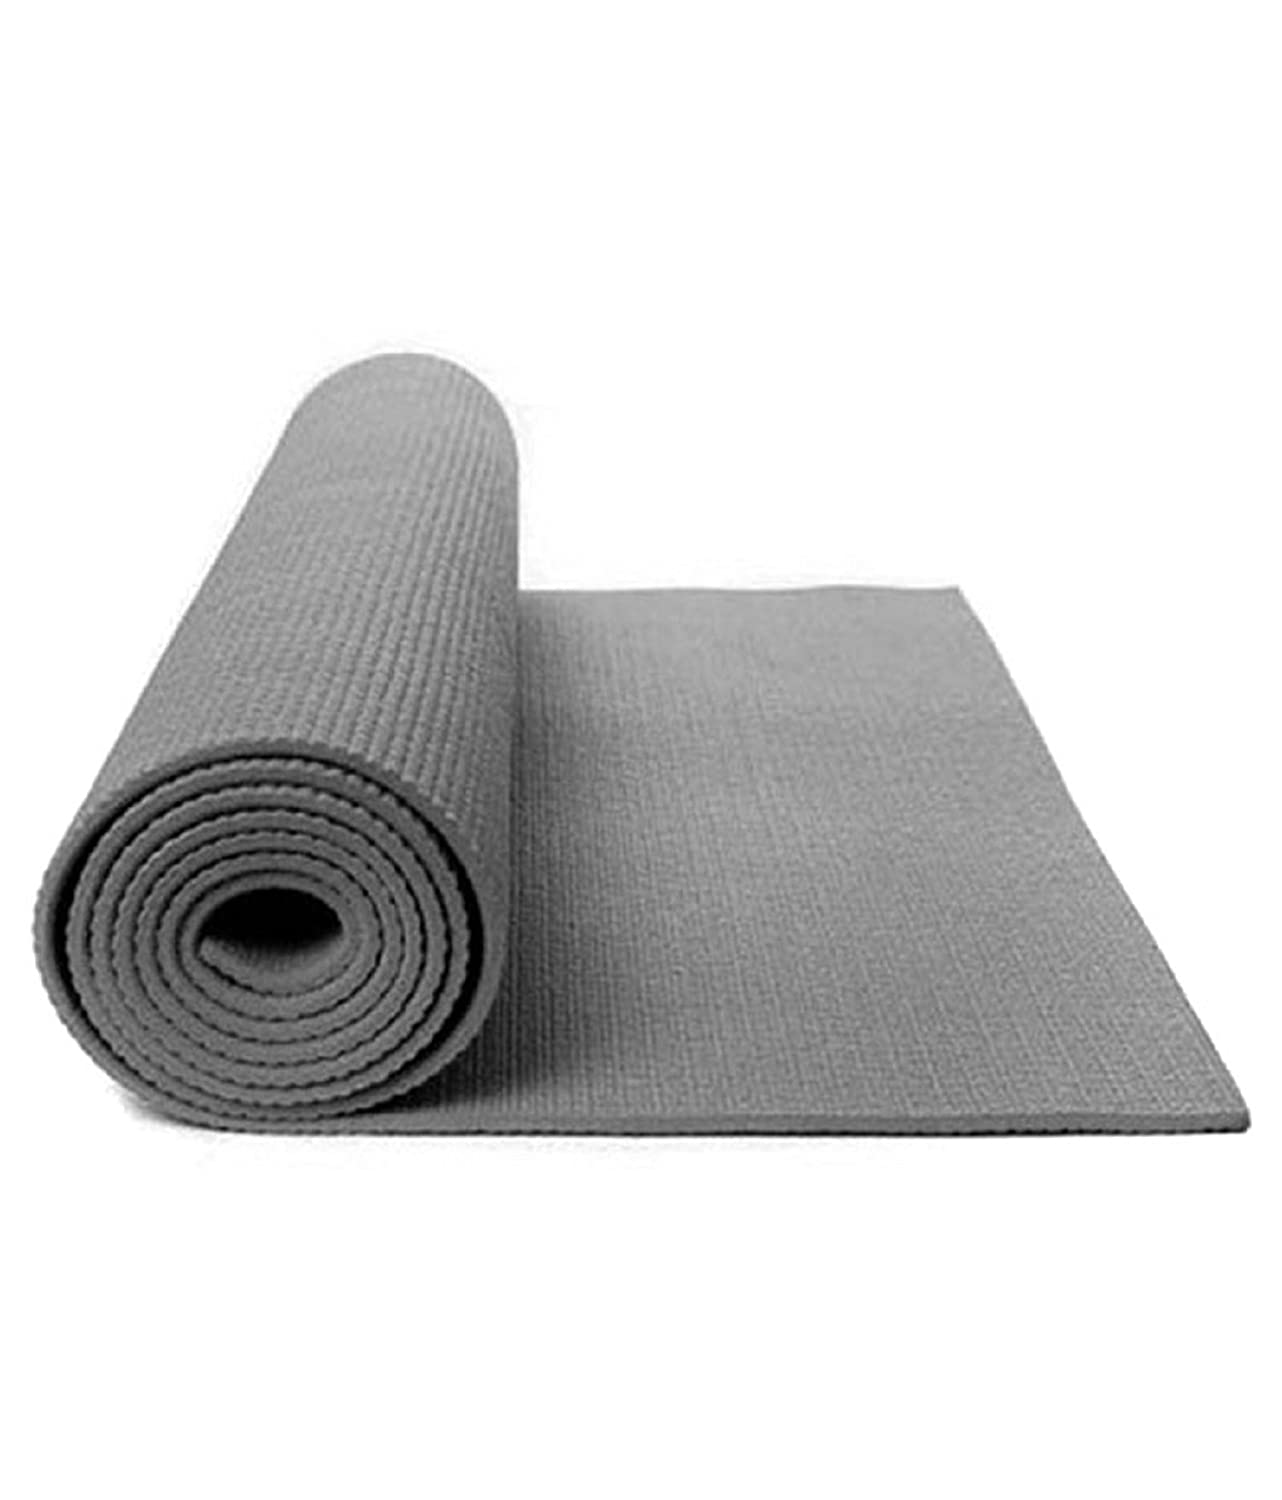 ca home dp gymnastic jack tumbl for jill outdoors sports mats mat trak amazon l